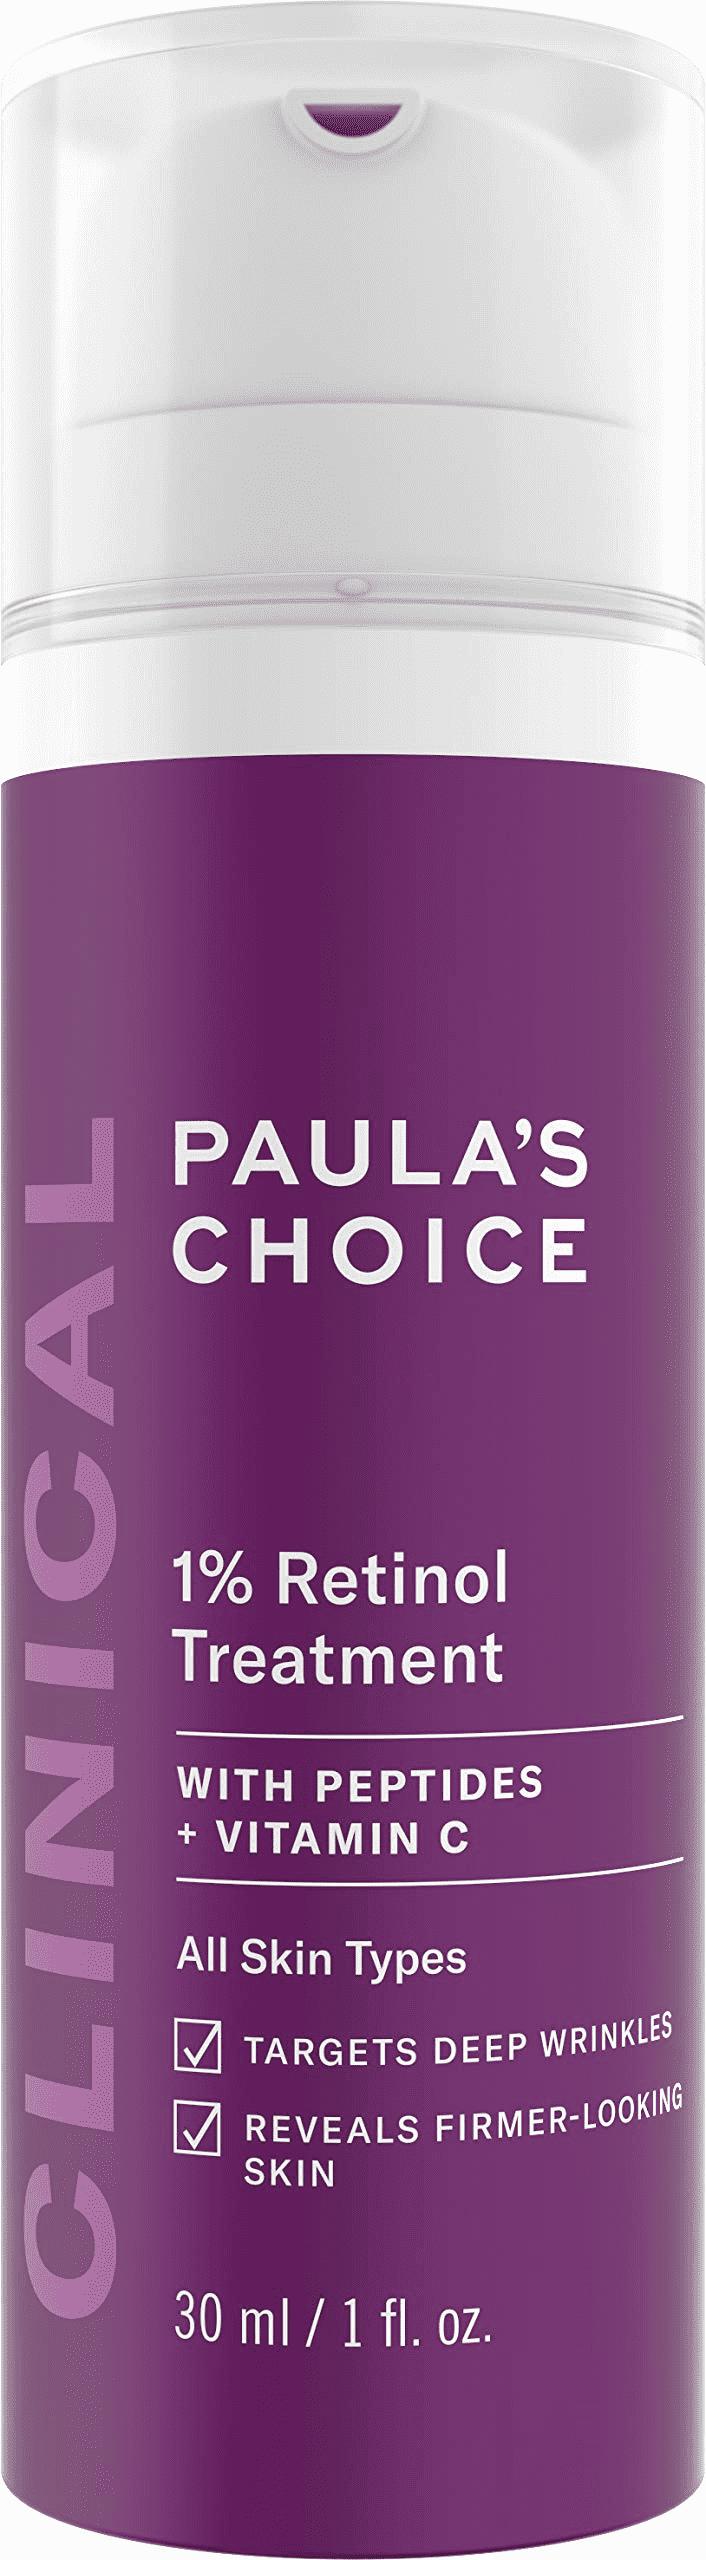 Paula's Choice Clinical Retinol Treatment